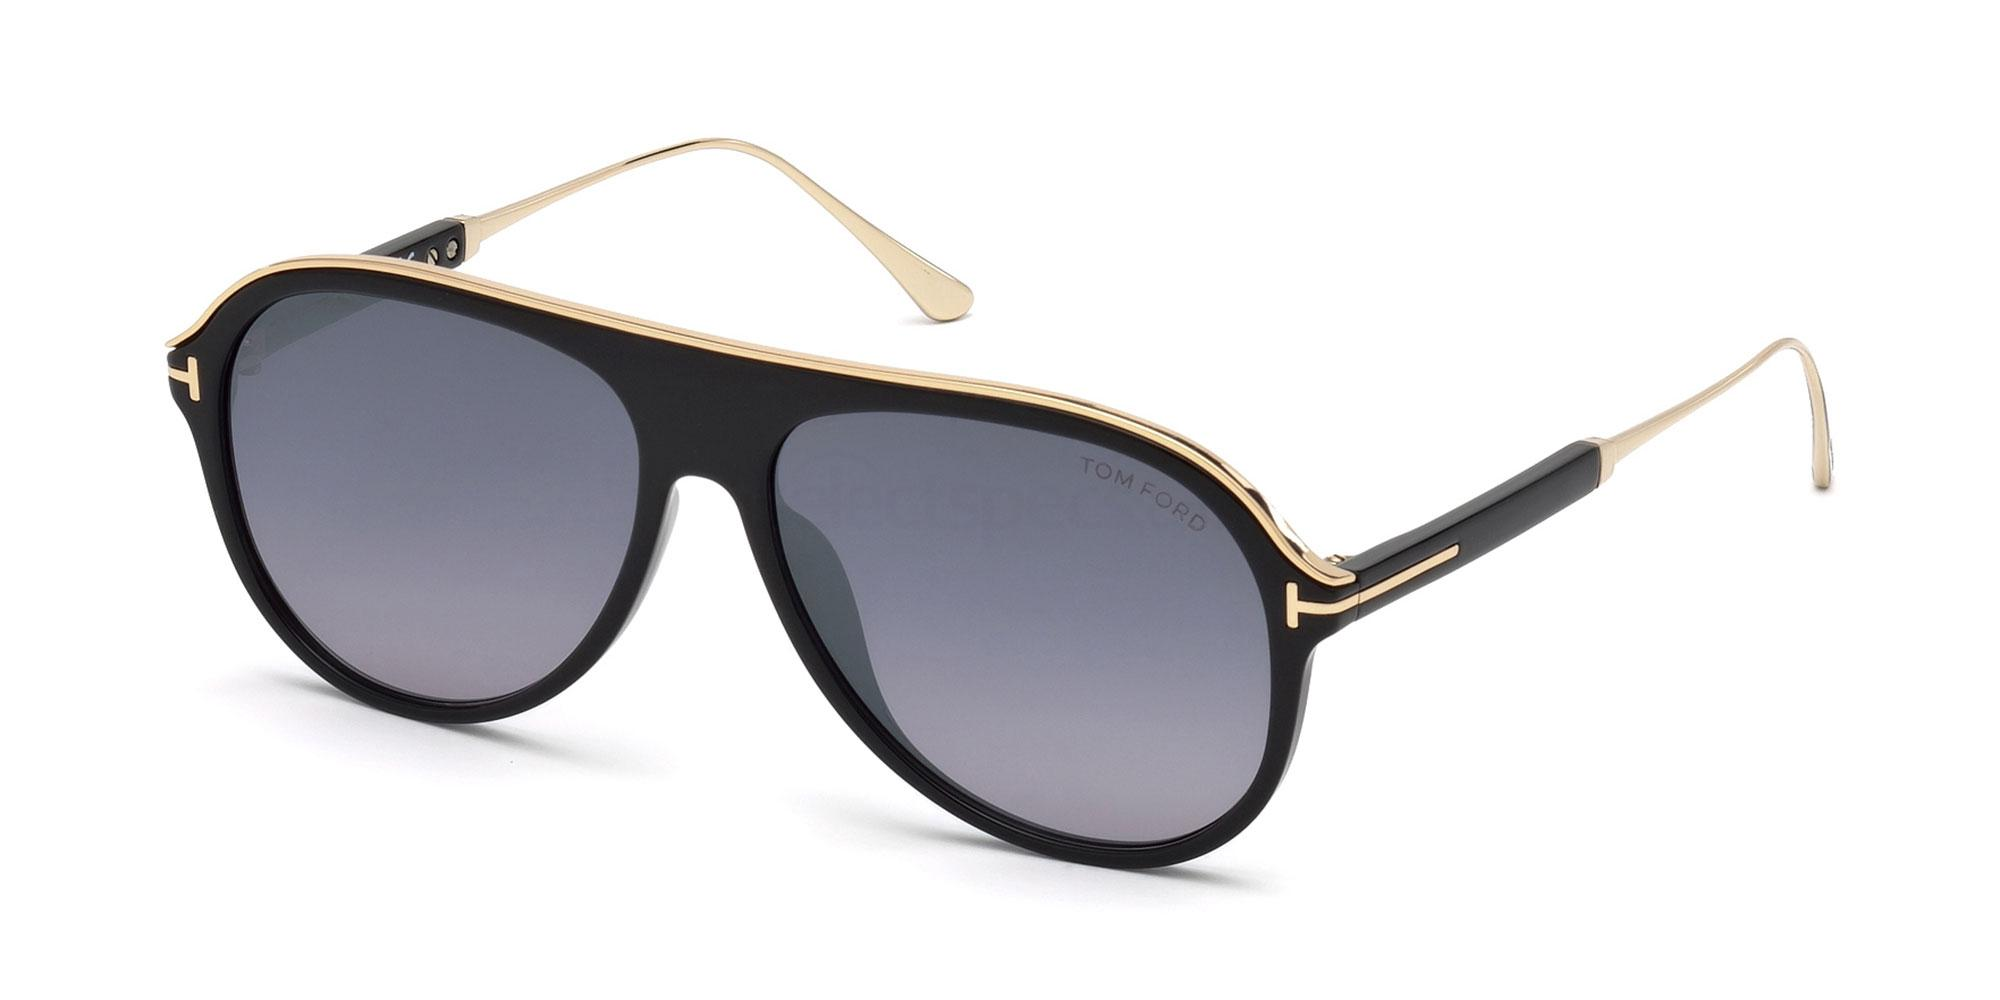 01C FT0624 Sunglasses, Tom Ford